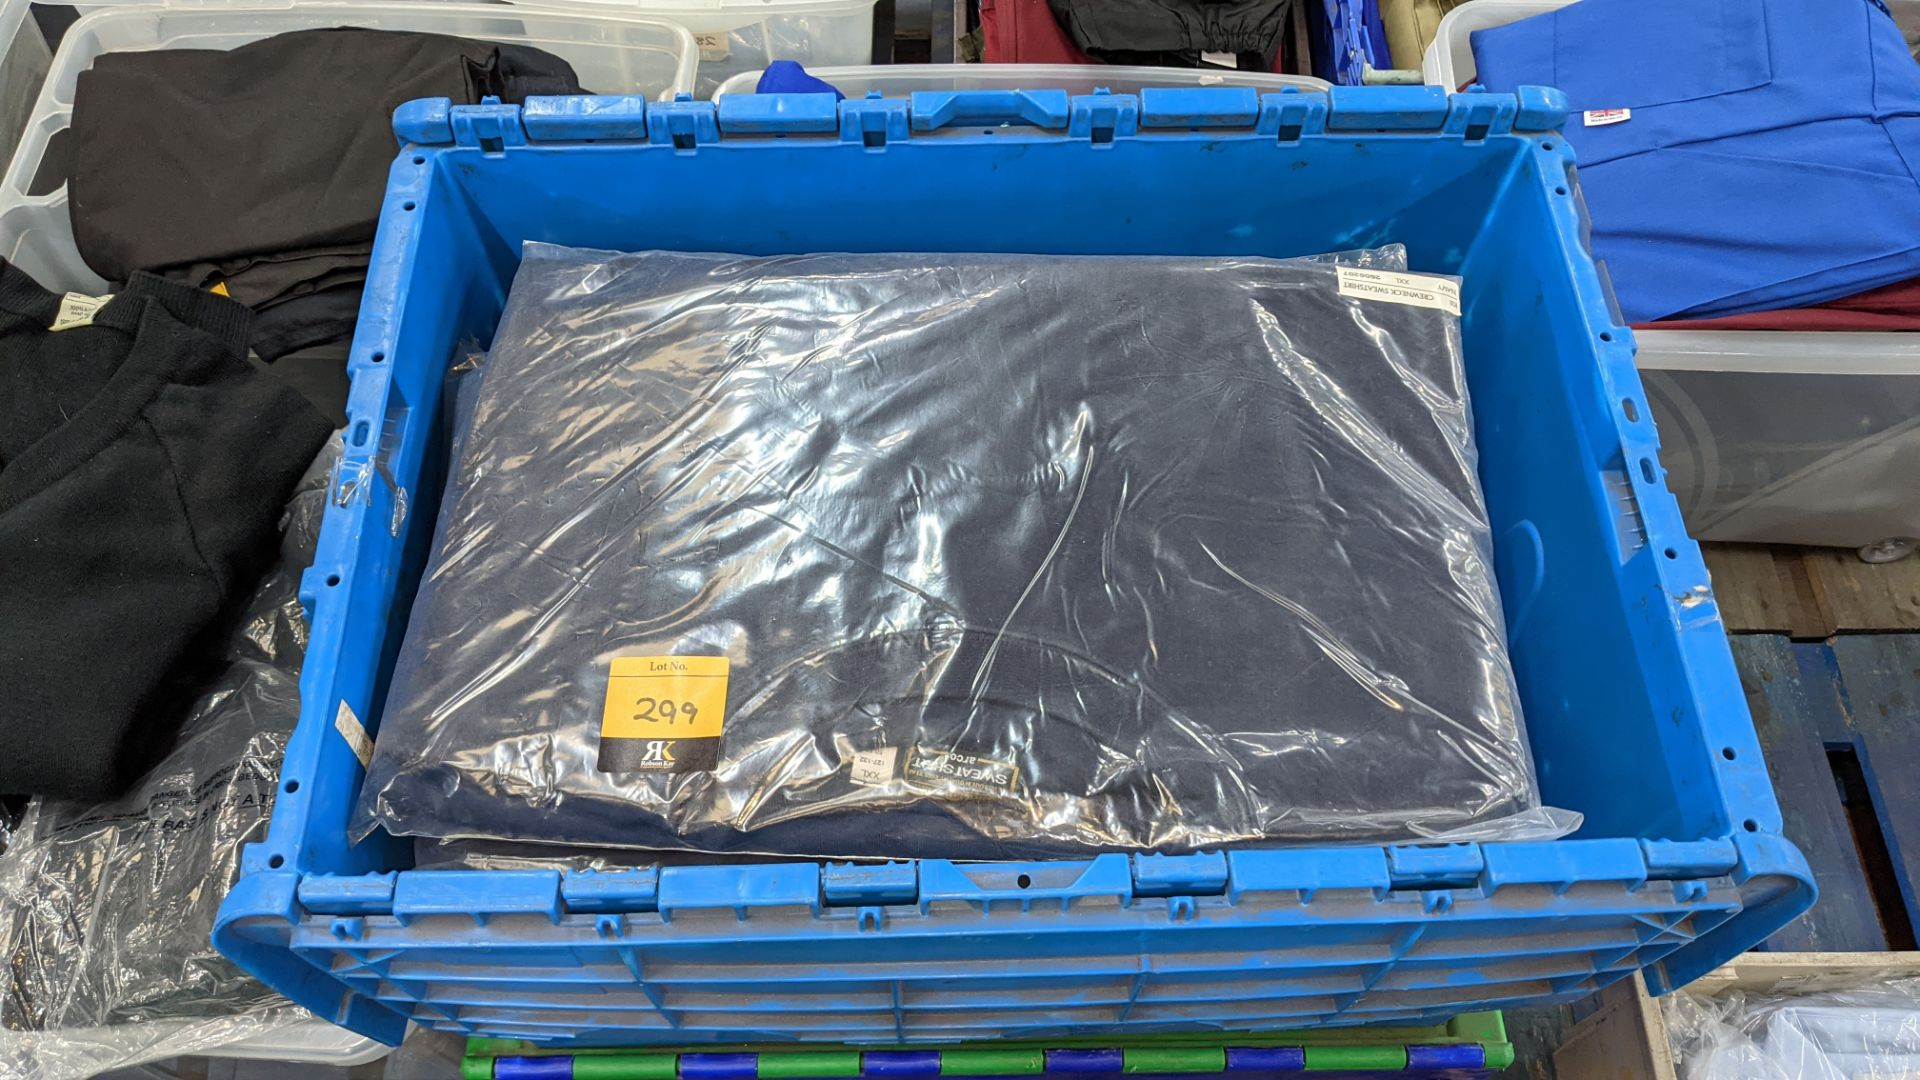 15 off workwear blue sweatshirts - the contents of 1 crate. NB crate excluded - Image 2 of 5